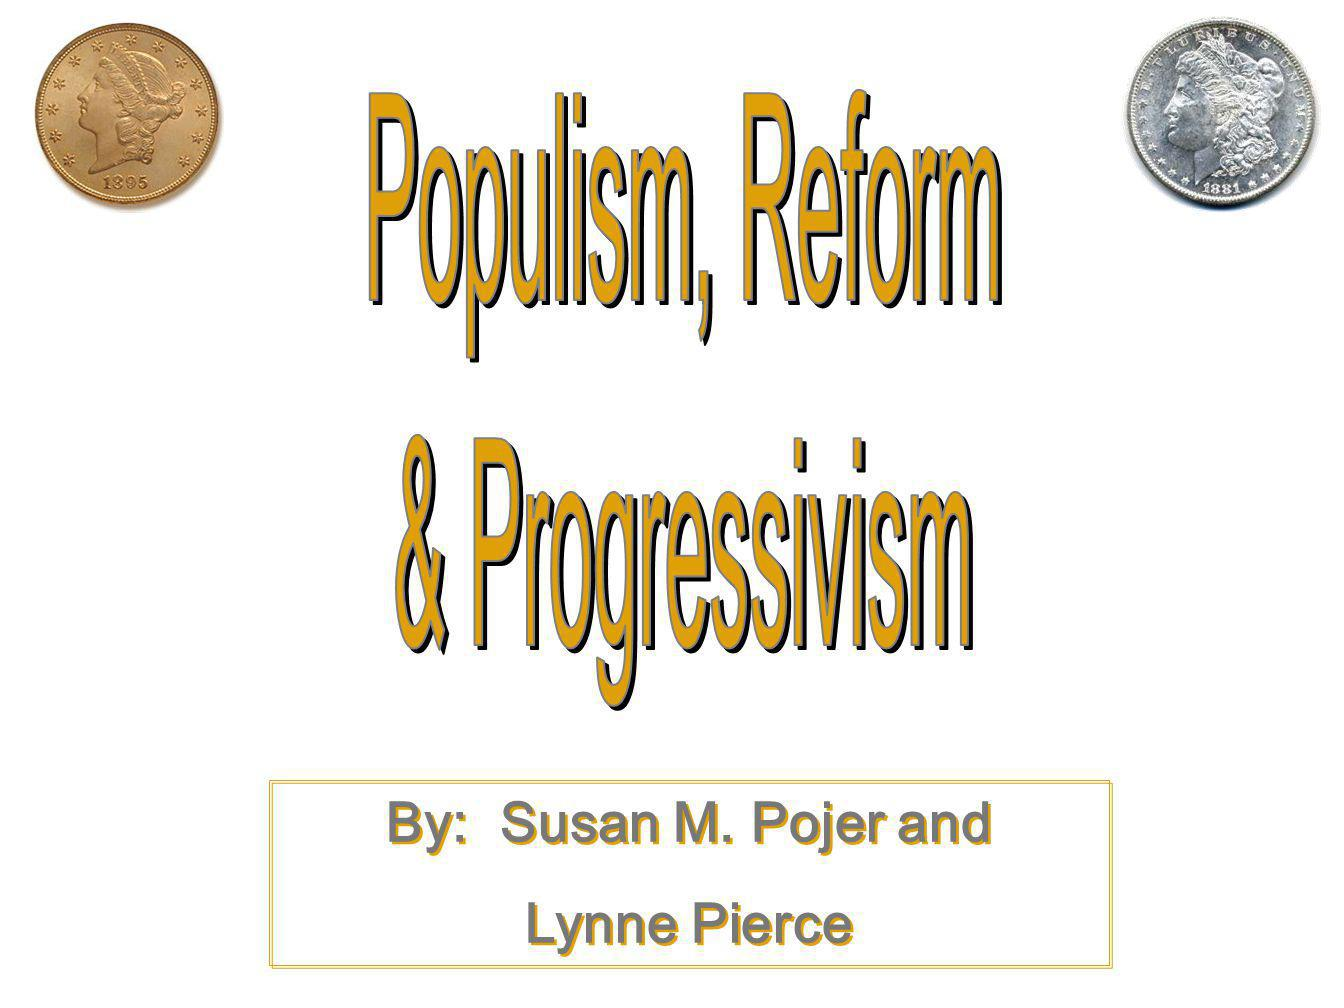 By: Susan M. Pojer and Lynne Pierce By: Susan M. Pojer and Lynne Pierce